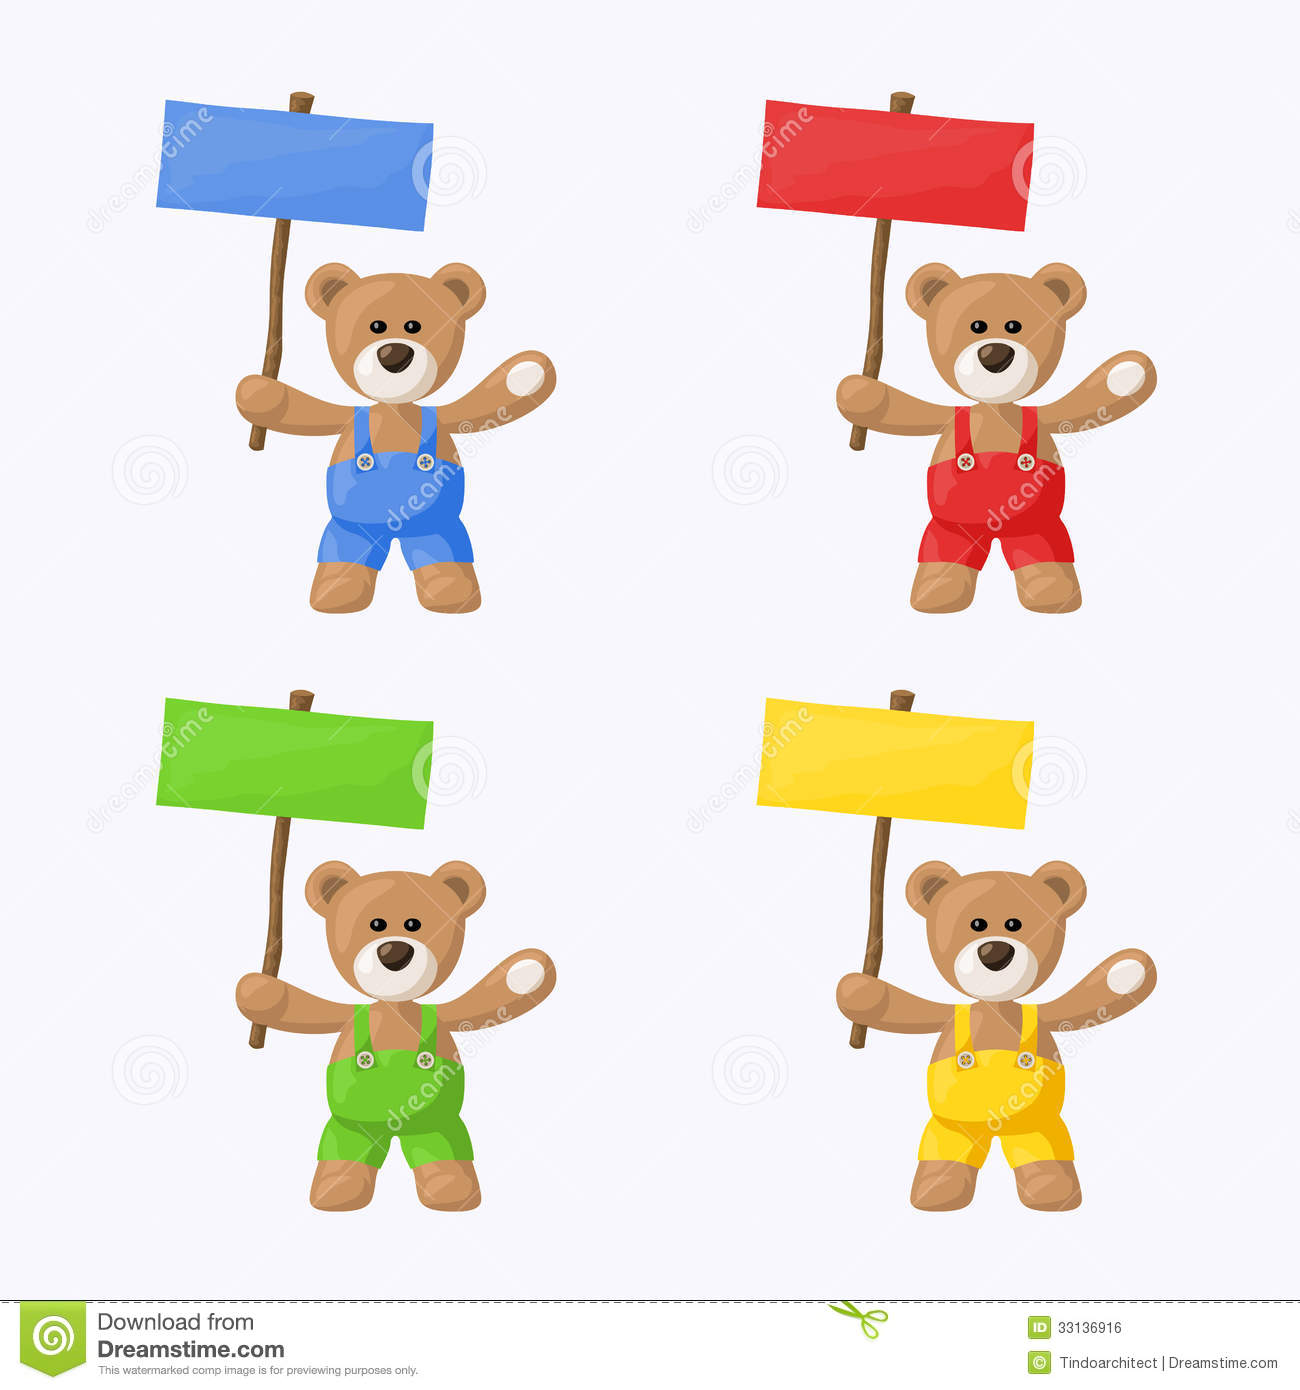 Teddy Bears With Colored Signboards Royalty Free Stock Image - Image ...